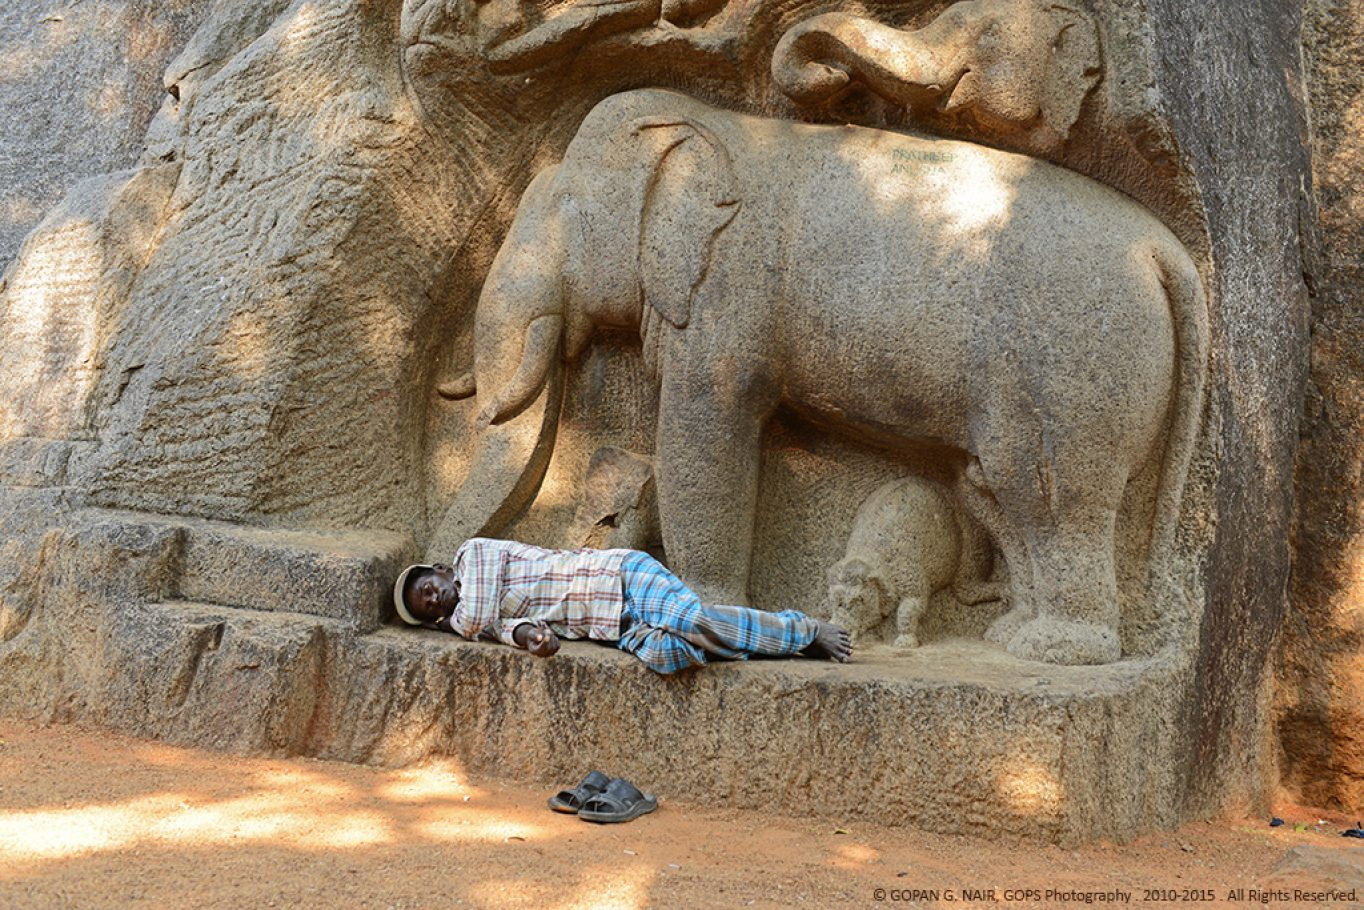 WAKE-UP MAHOUT, IT IS TIME TO GO FOR THE FESTIVAL...